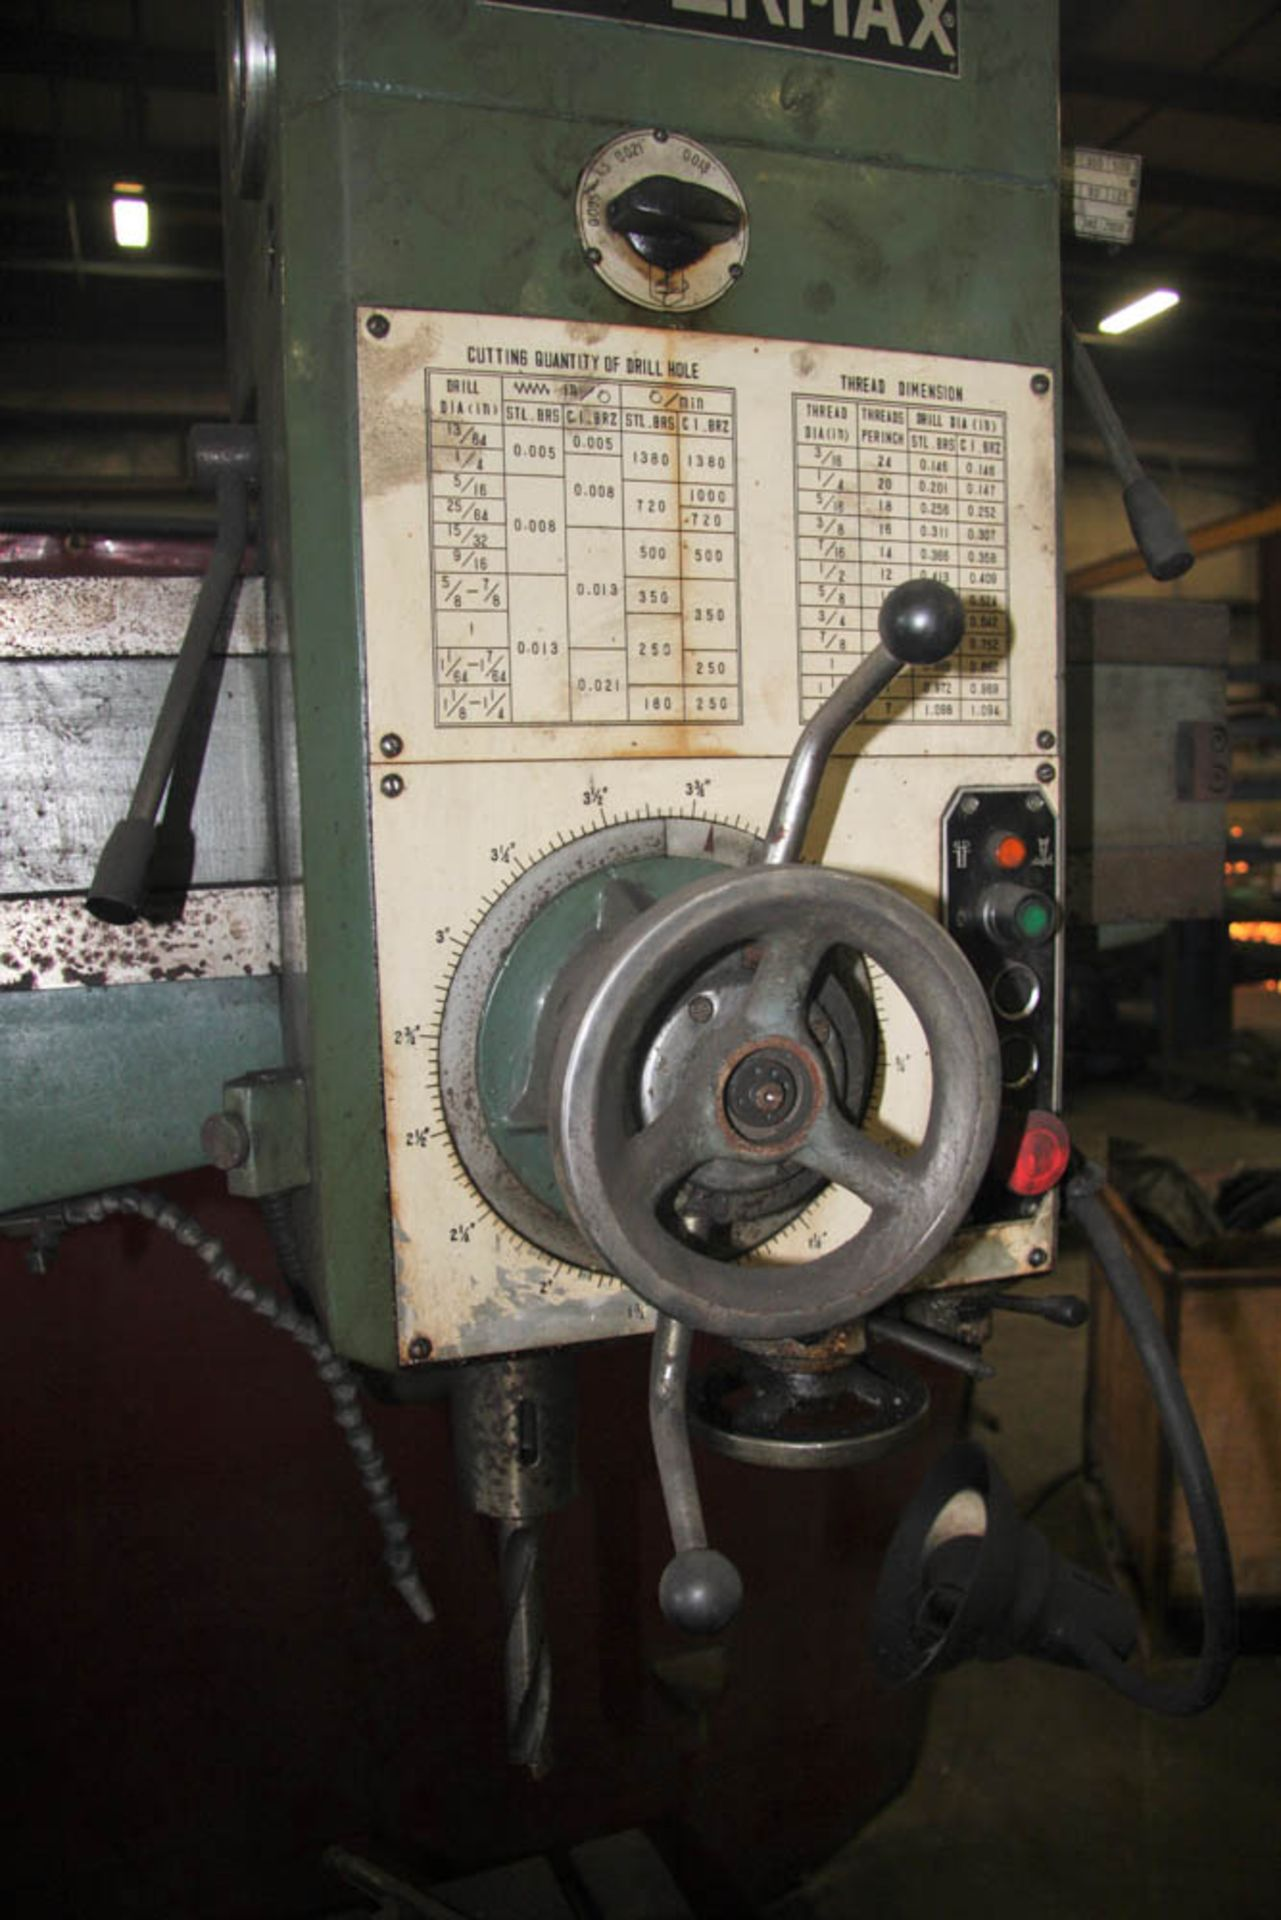 """SUPERMAX MDL. HRD-1000 3' X 9' RADIAL ARM DRILL, POWER ELEVATION, COOLANT, 17"""" X 18"""" X 18"""" T-SLOTTED - Image 3 of 11"""